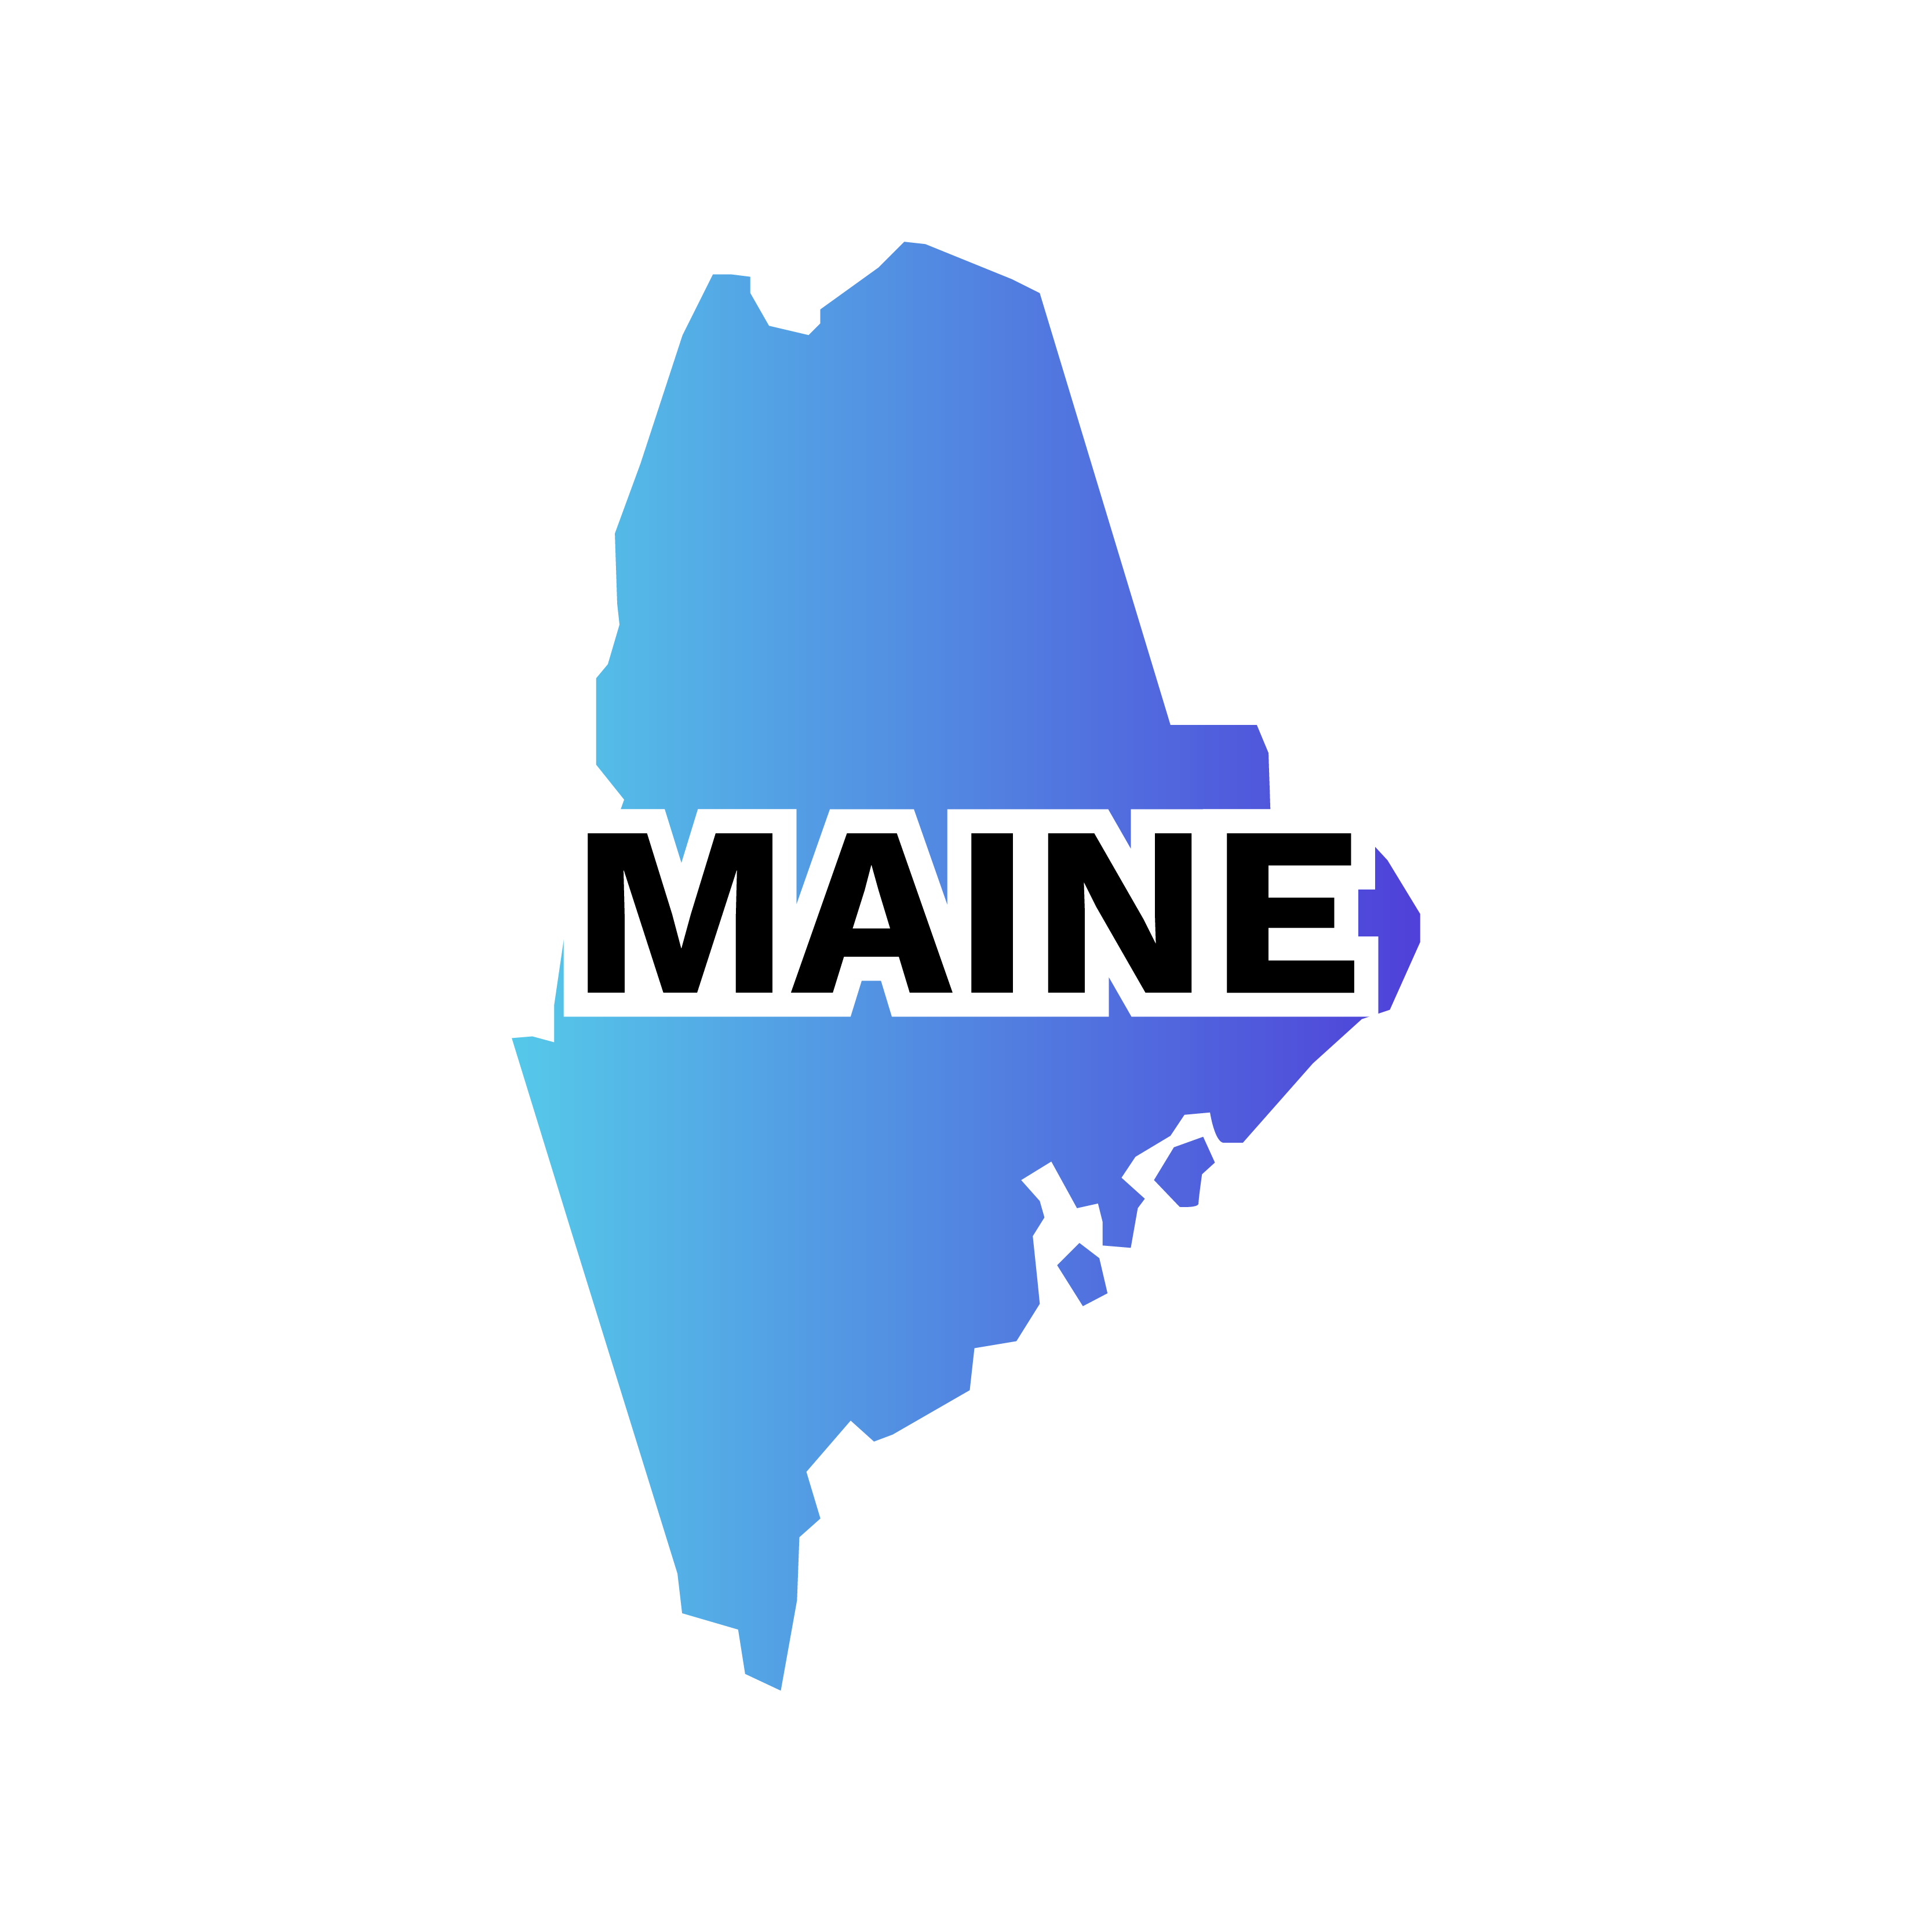 Maine State Image